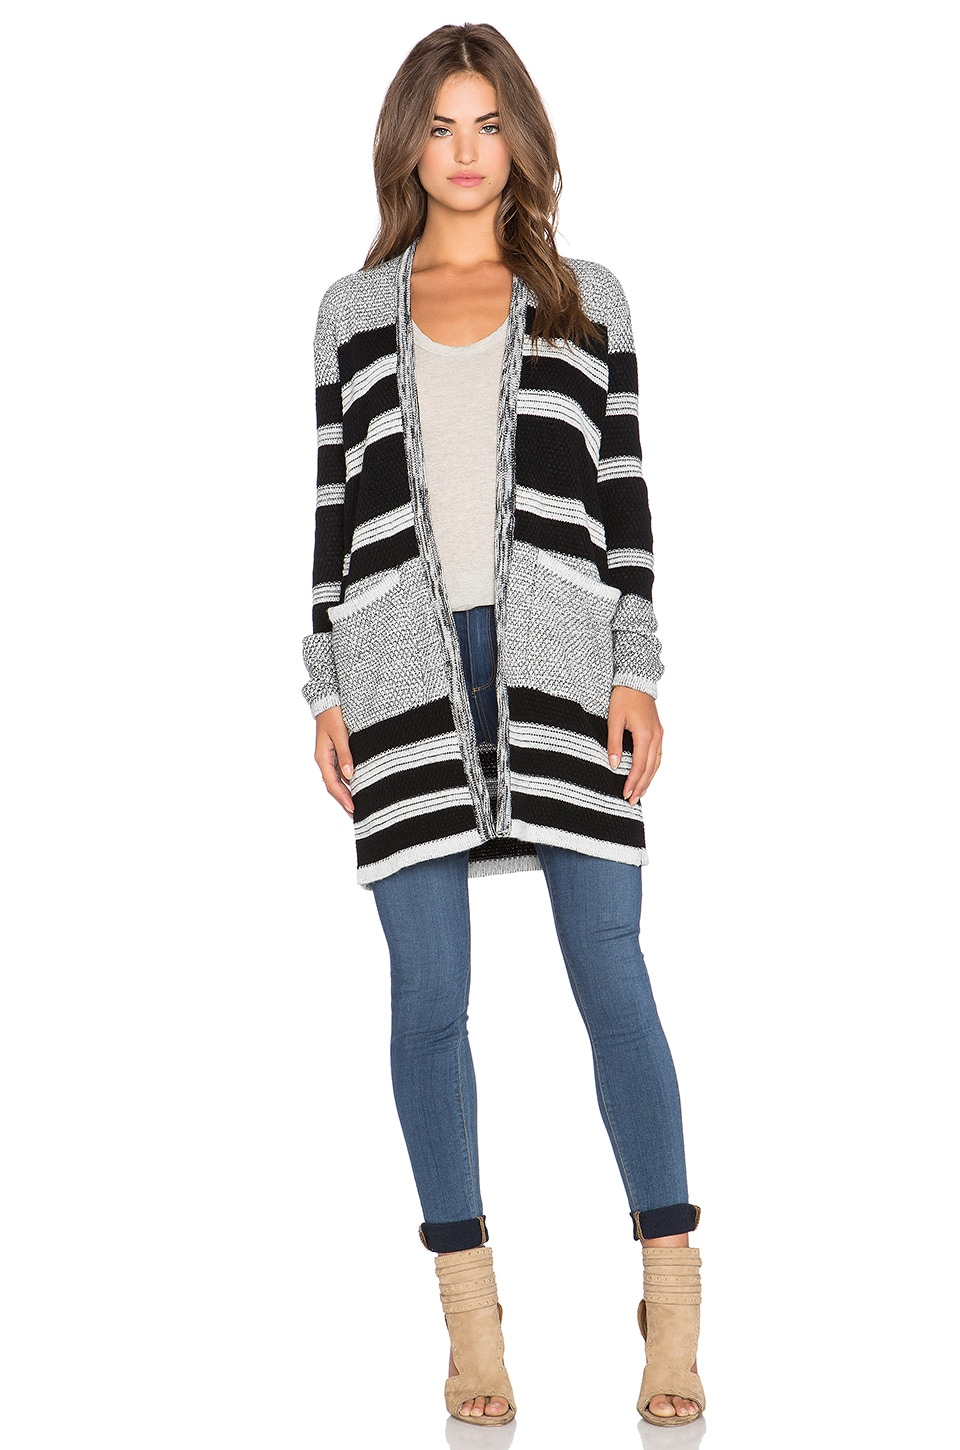 Lucy Paris Fireside Cardigan in Black & Grey